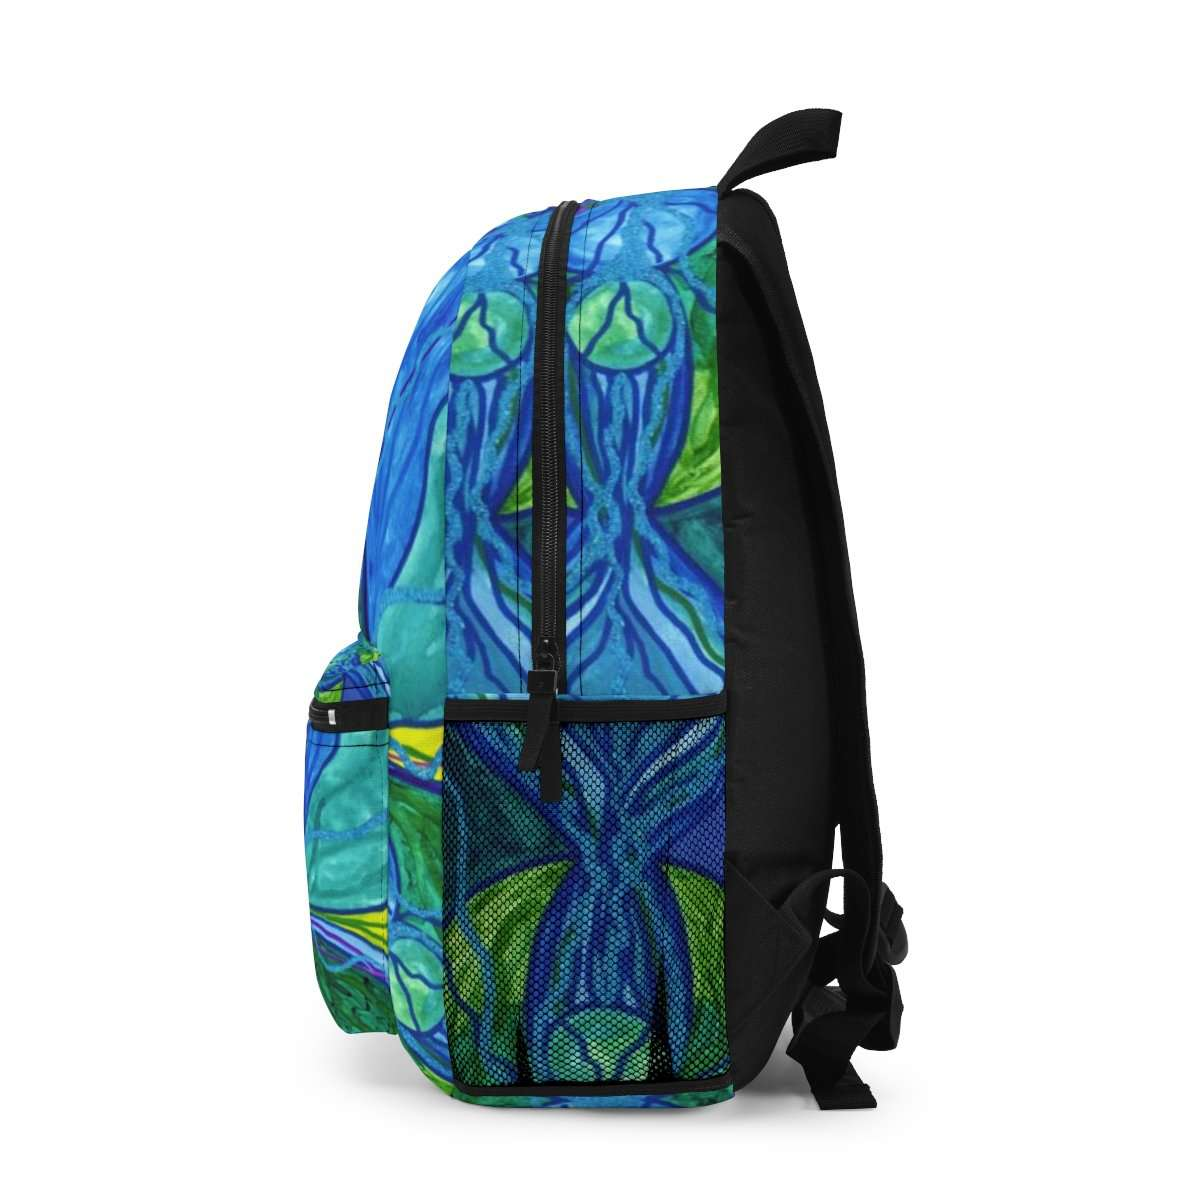 Tranquility - AOP Backpack